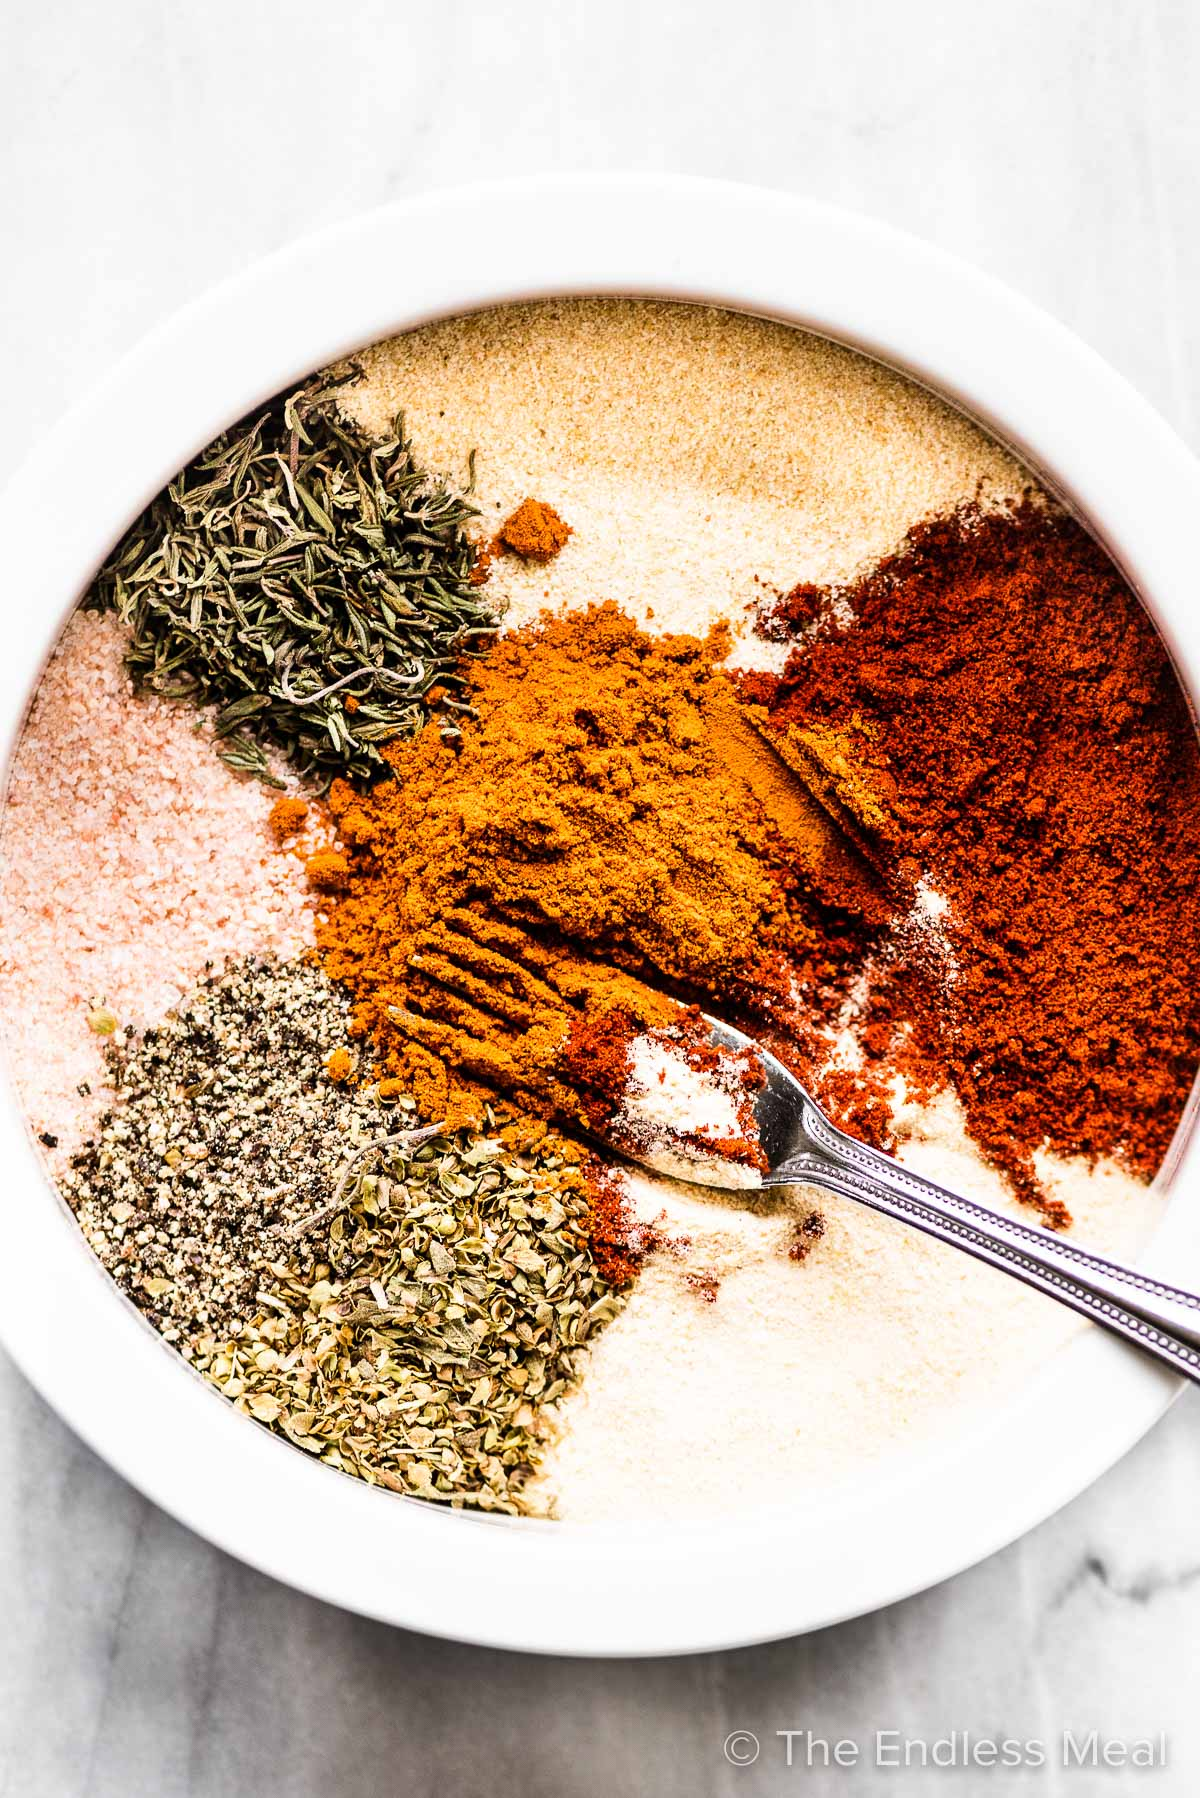 Cajun seasoning spices in a bowl with a fork.